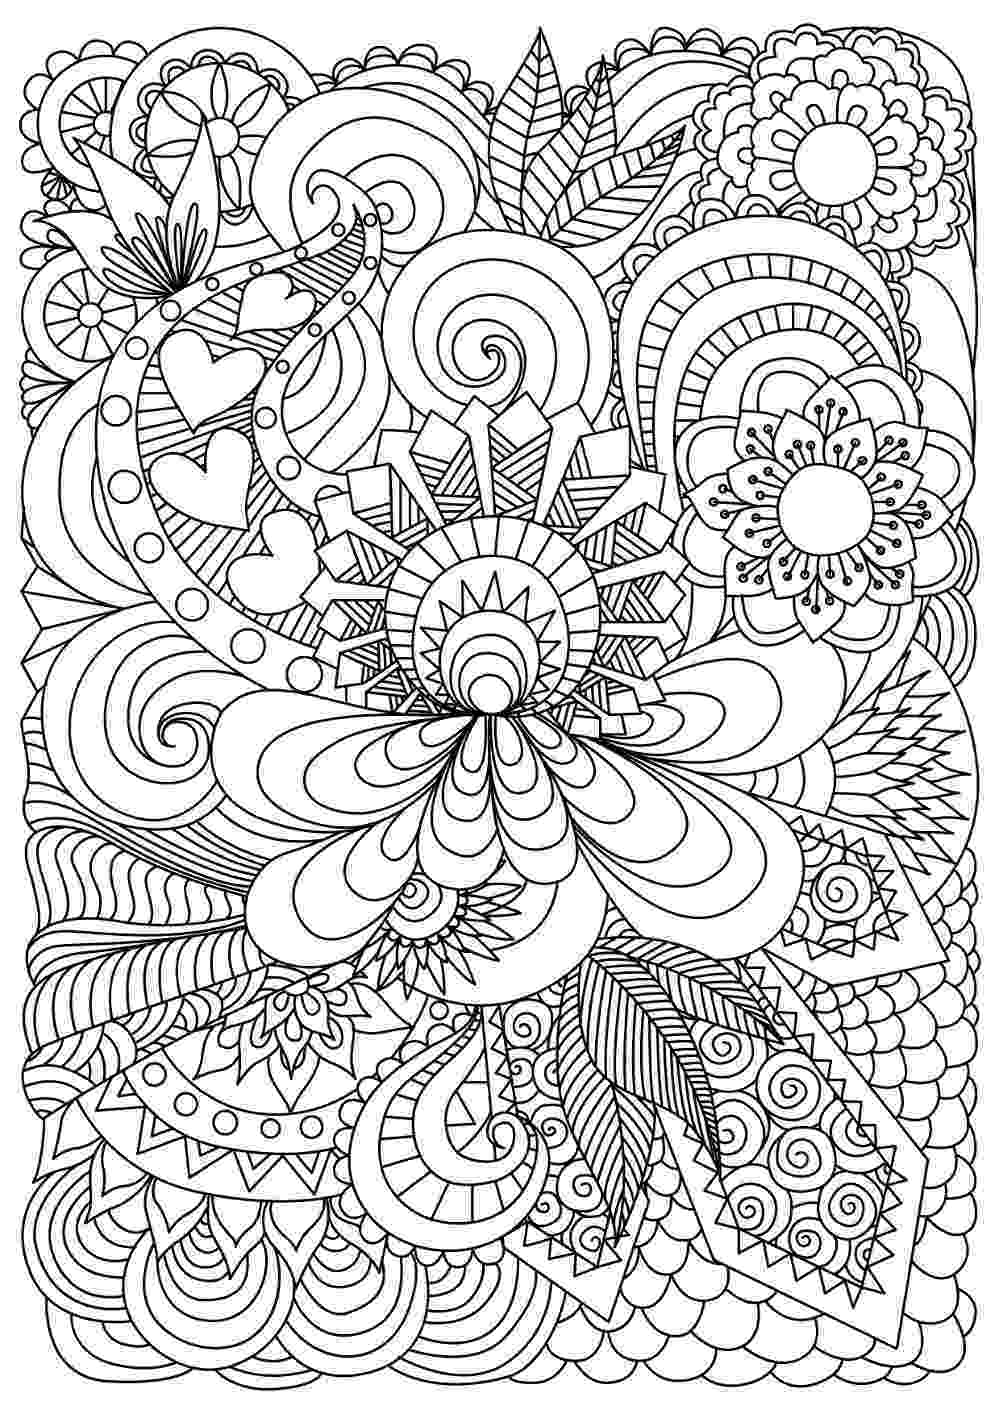 coloring pages for adults free online 10 free printable holiday adult coloring pages for online pages free coloring adults